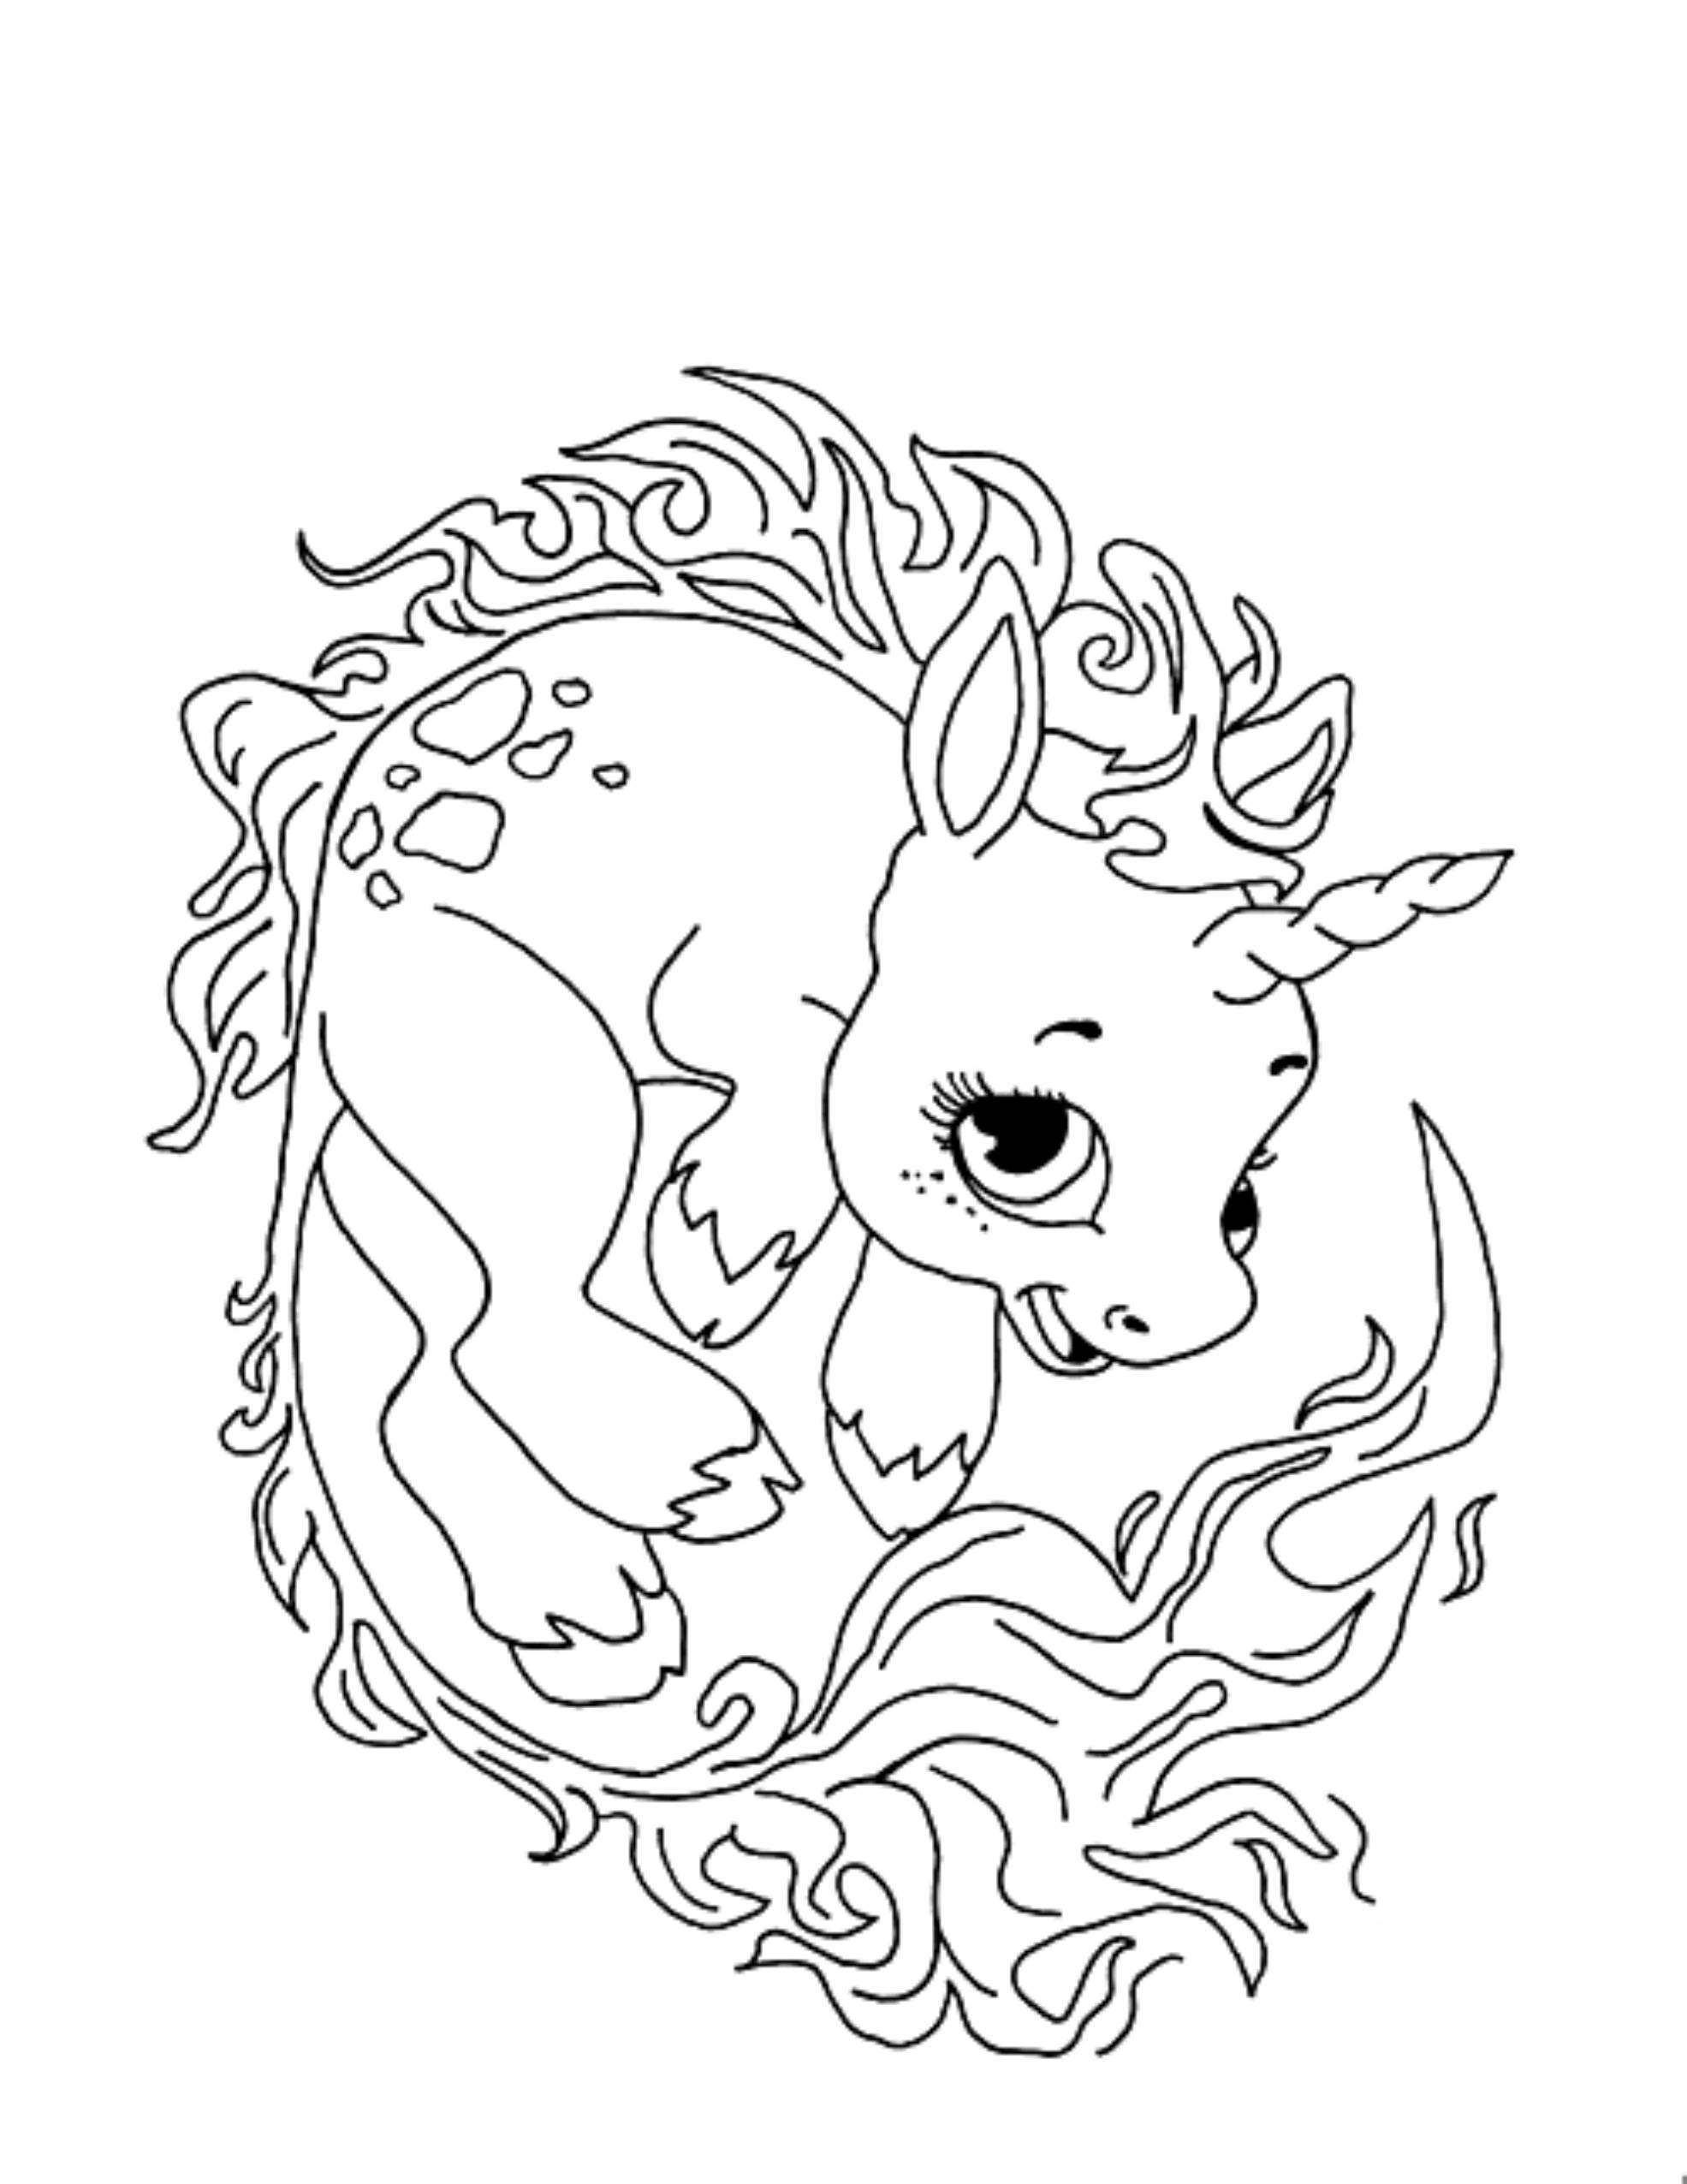 unicorn coloring pictures print download unicorn coloring pages for children pictures coloring unicorn